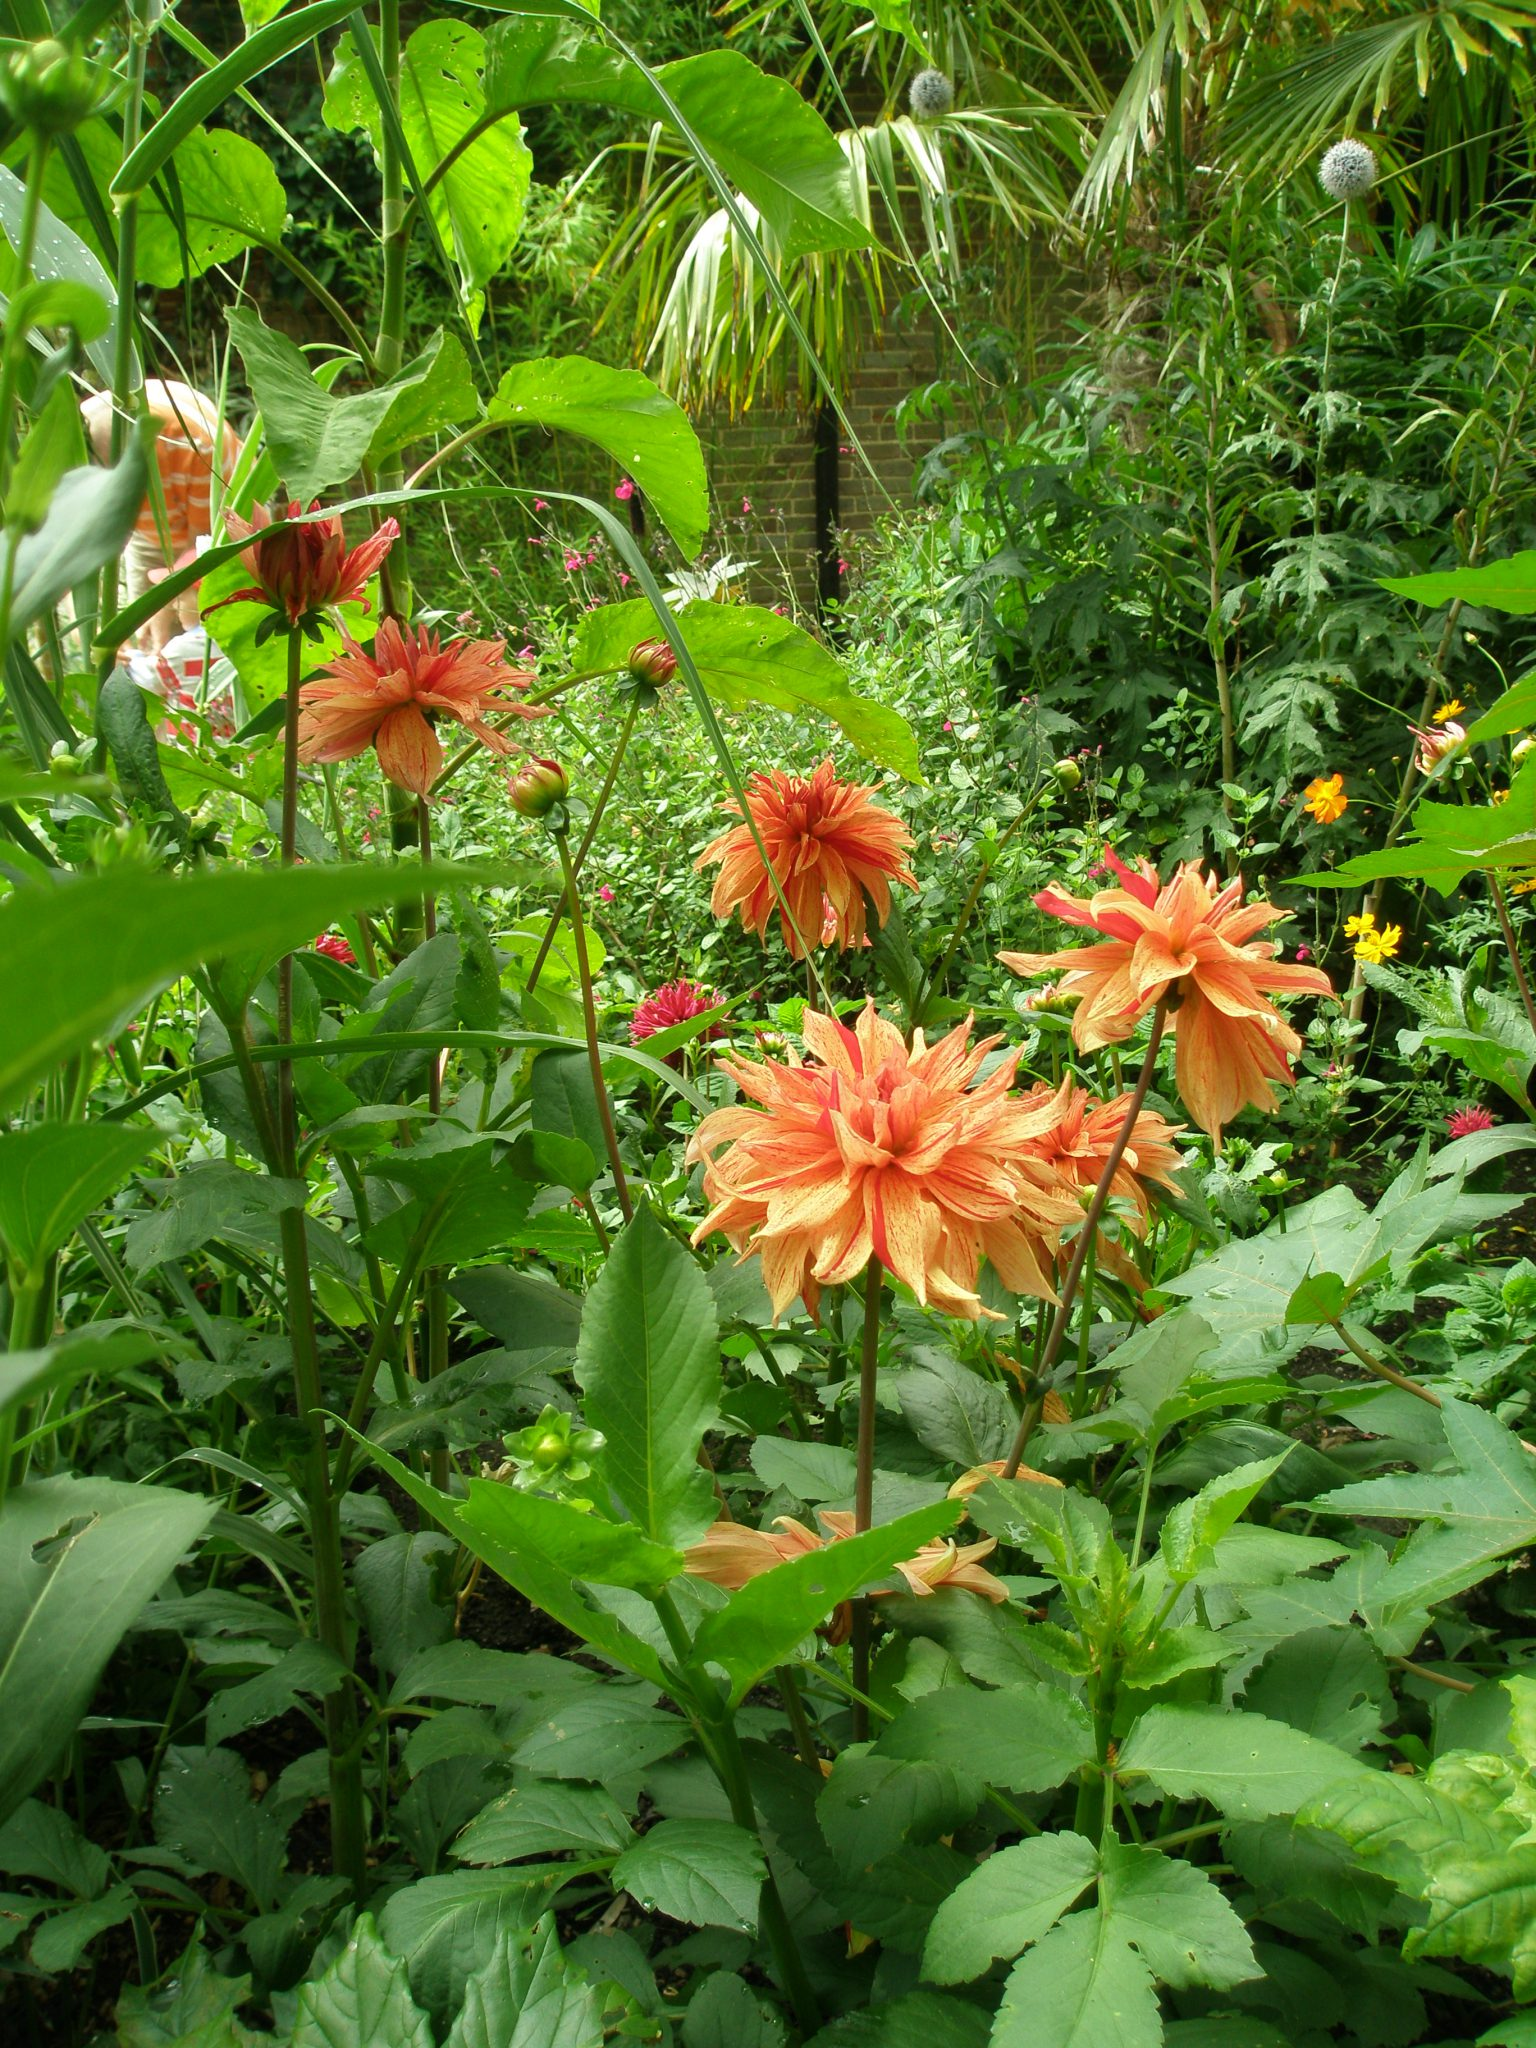 At the Main Entrance end of the Long Border, there's a little Tropical Garden, bursting with palms and dahlias.